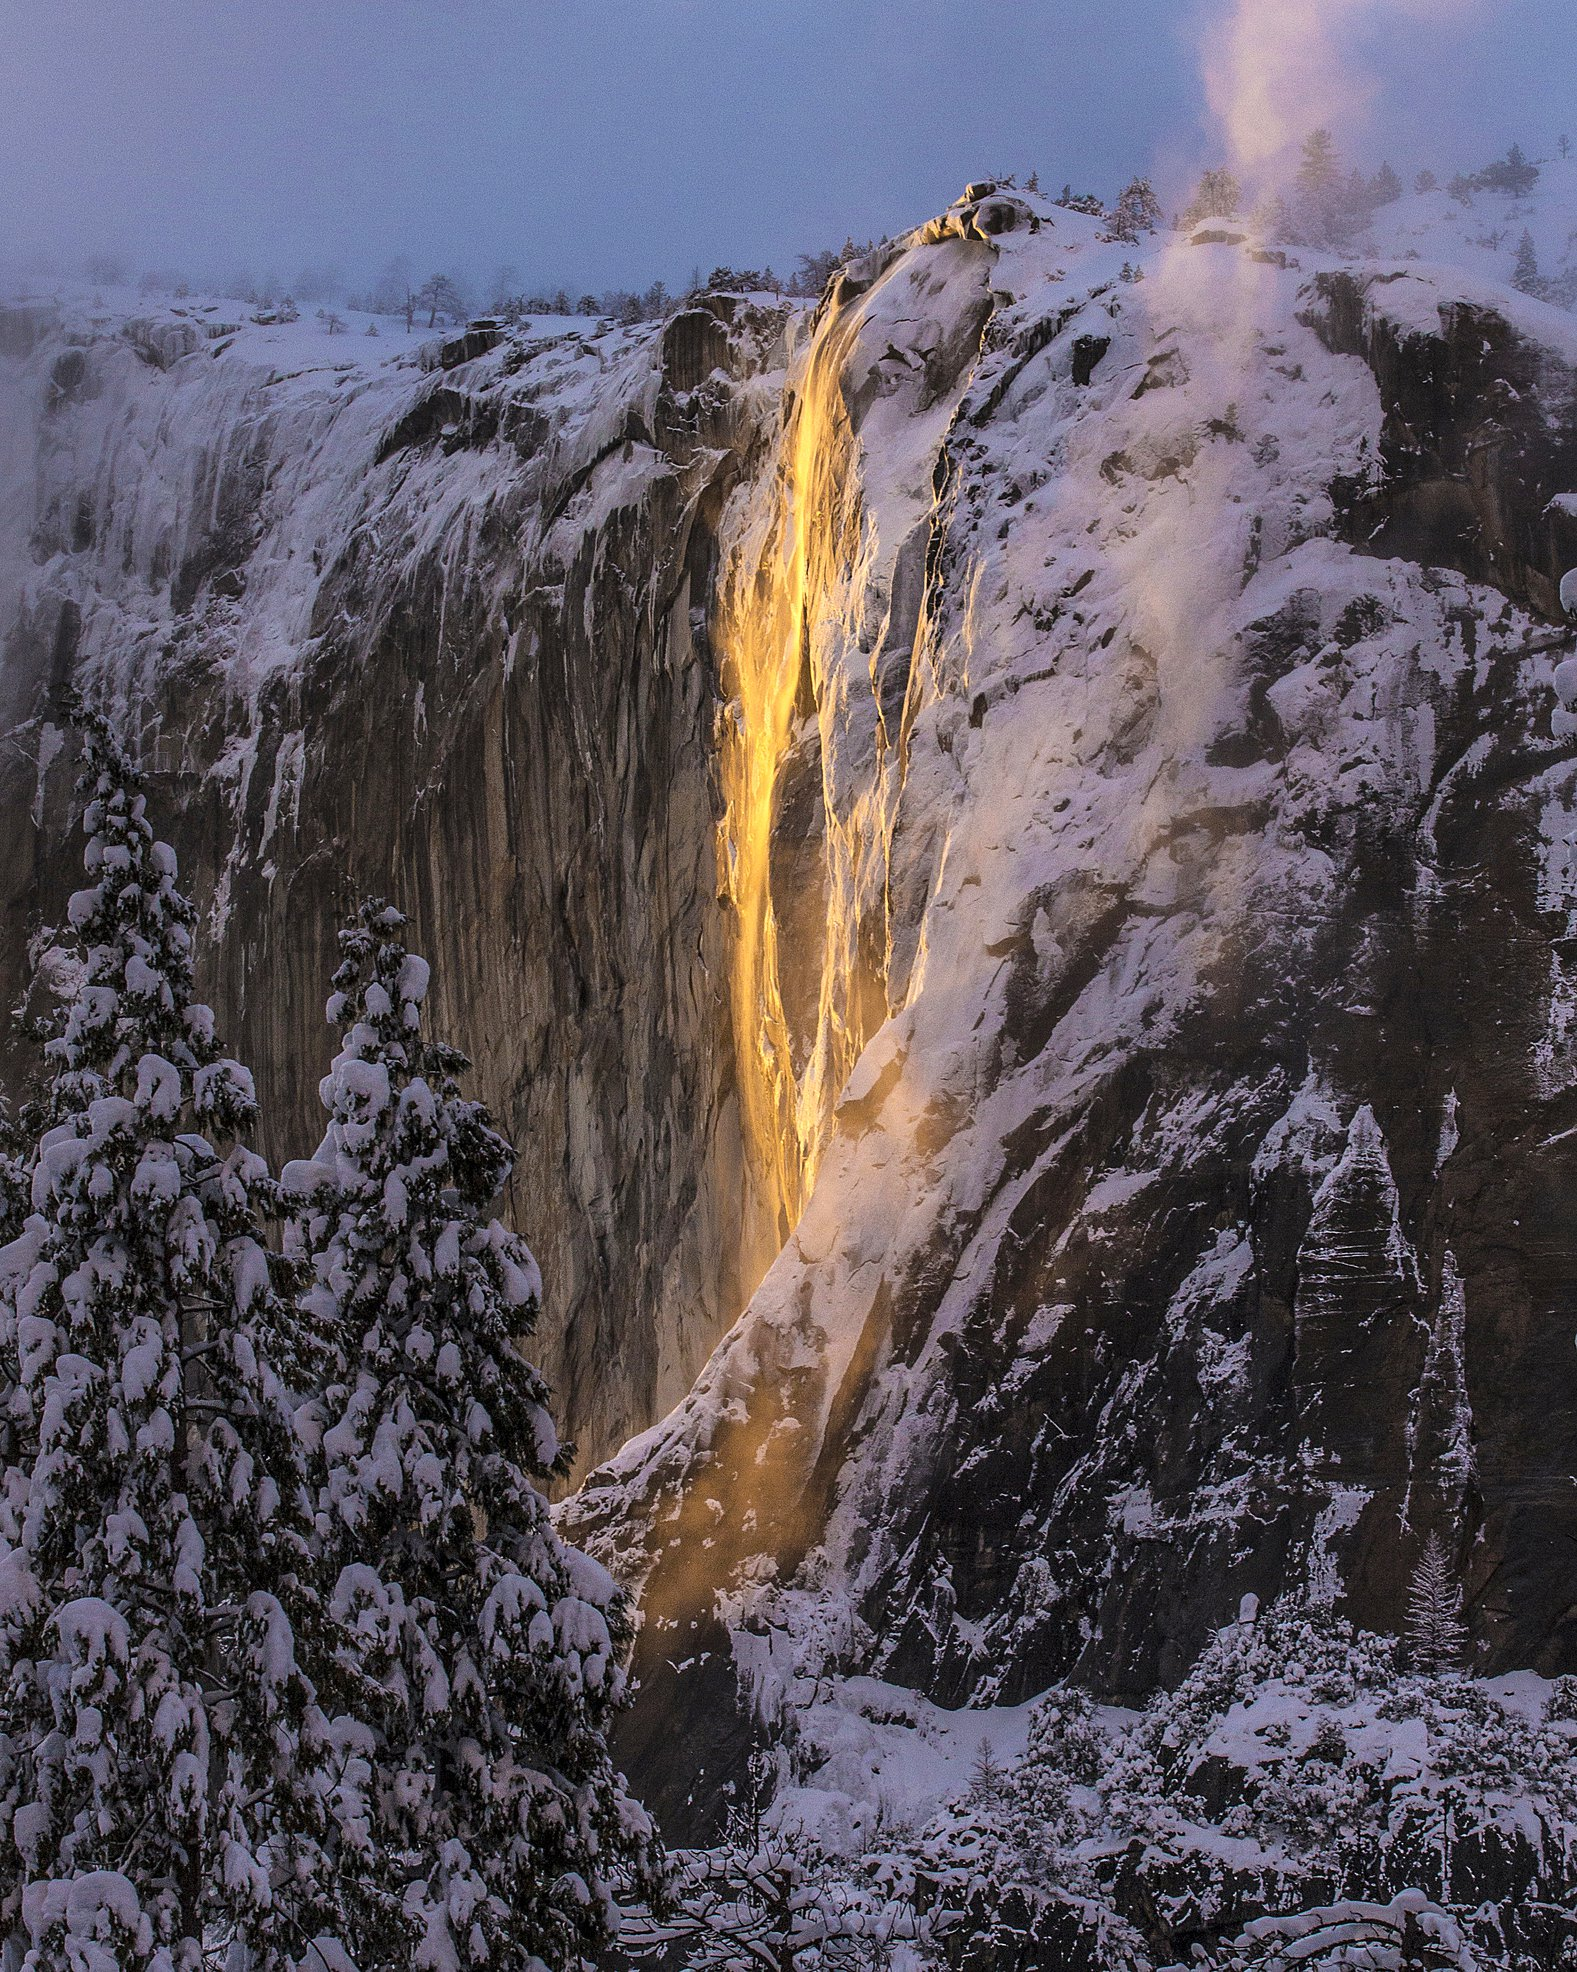 Yosemite-Waterfall-Winter-Fire.jpg